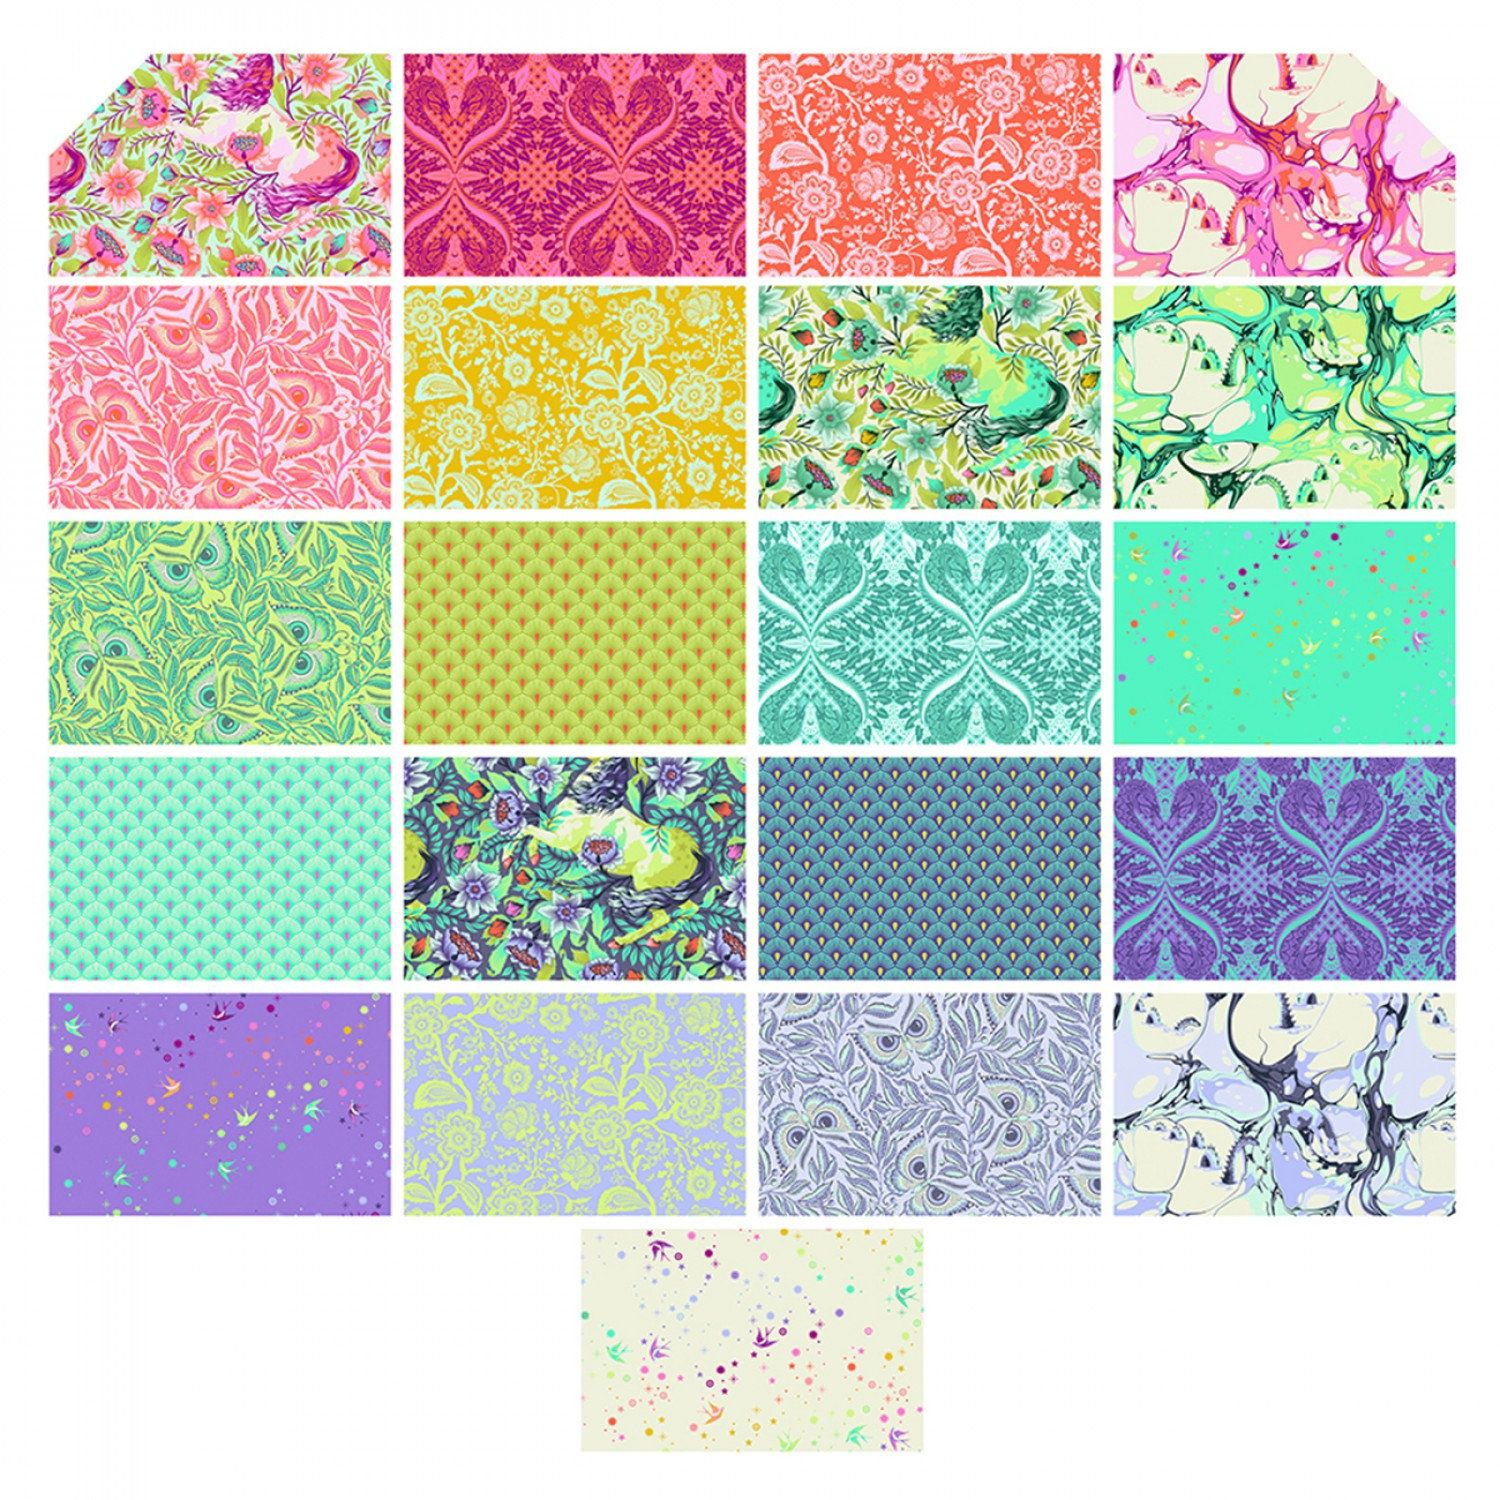 Daisy Delight 4 Fabric Squares Charm Pack 100/% cotton 40 pieces